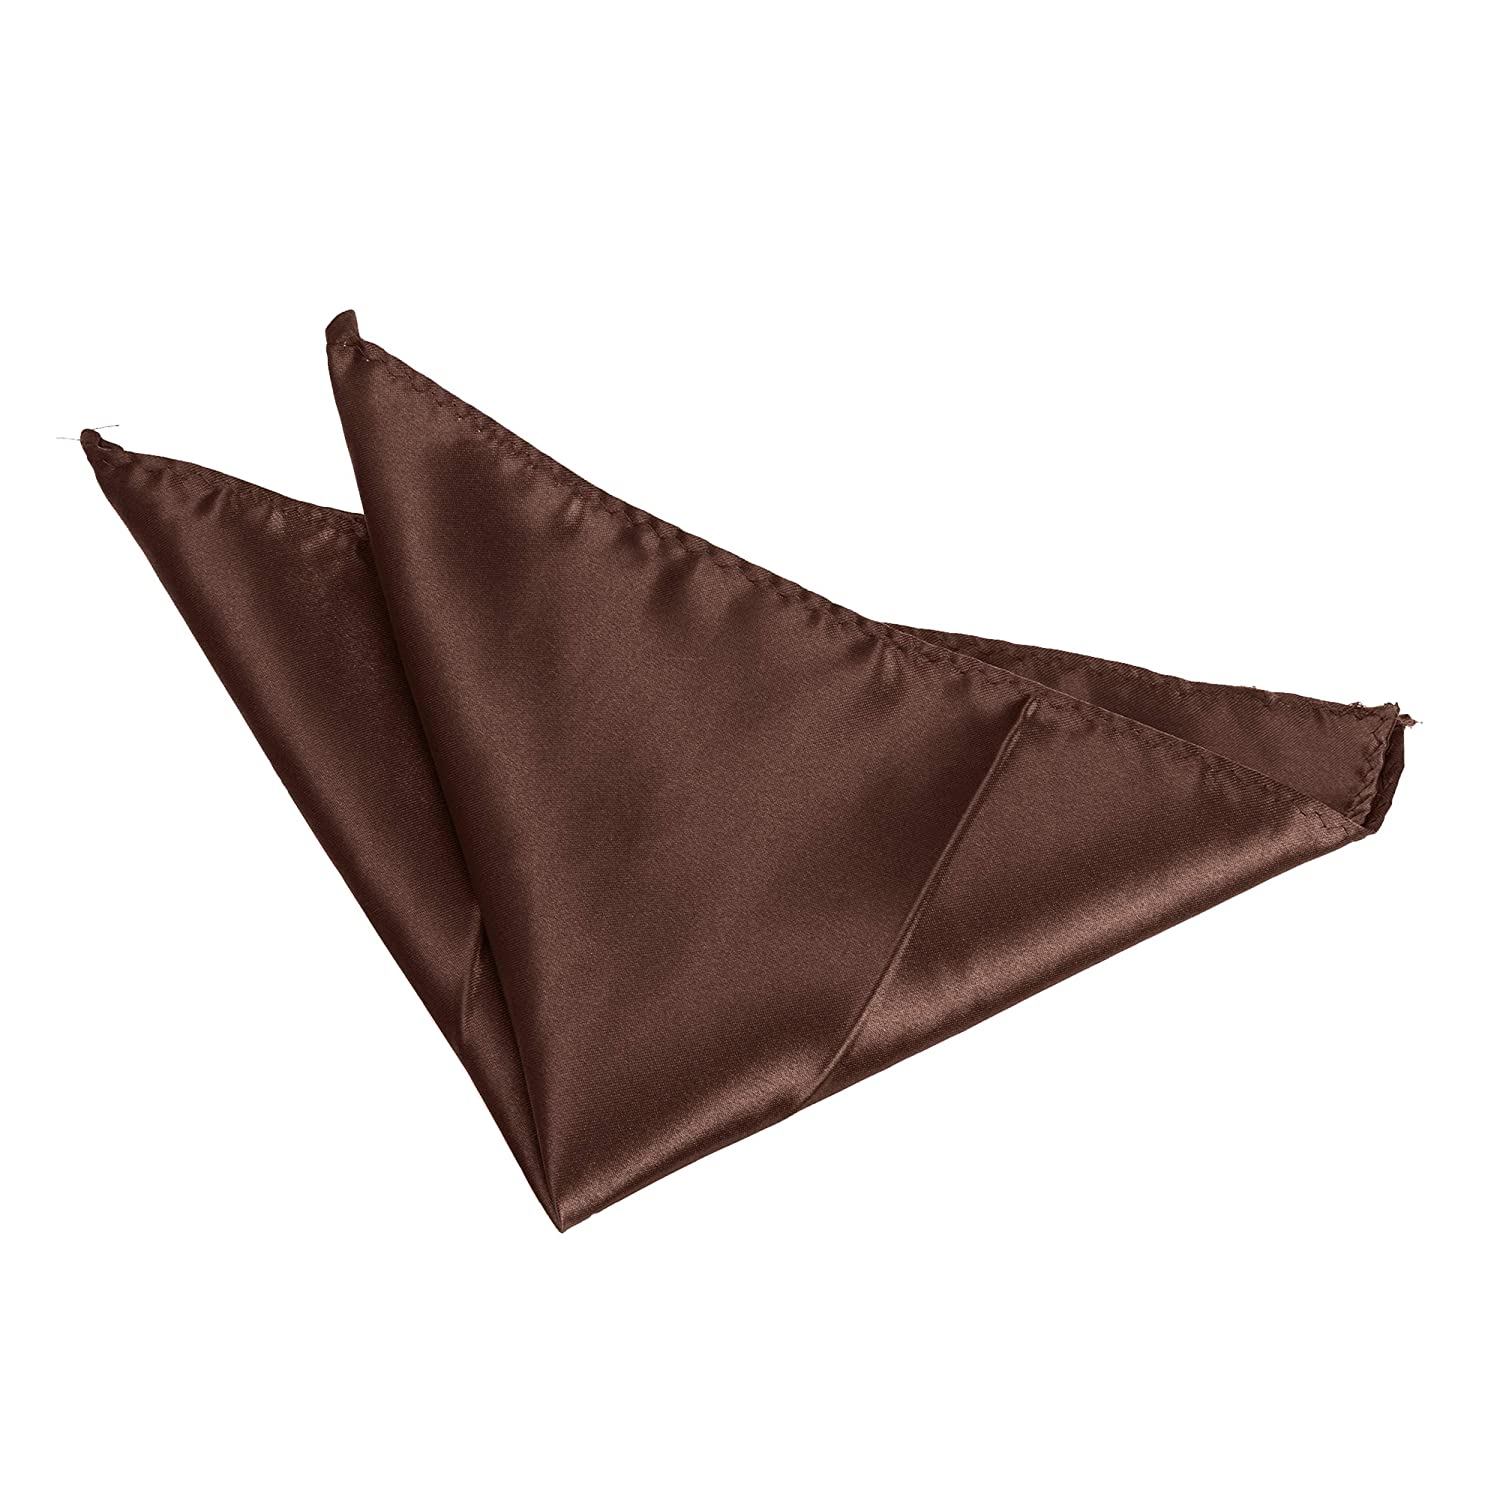 Satin Solid Colour Plain Polyester Pocket Square/Hanky/Handkerchief